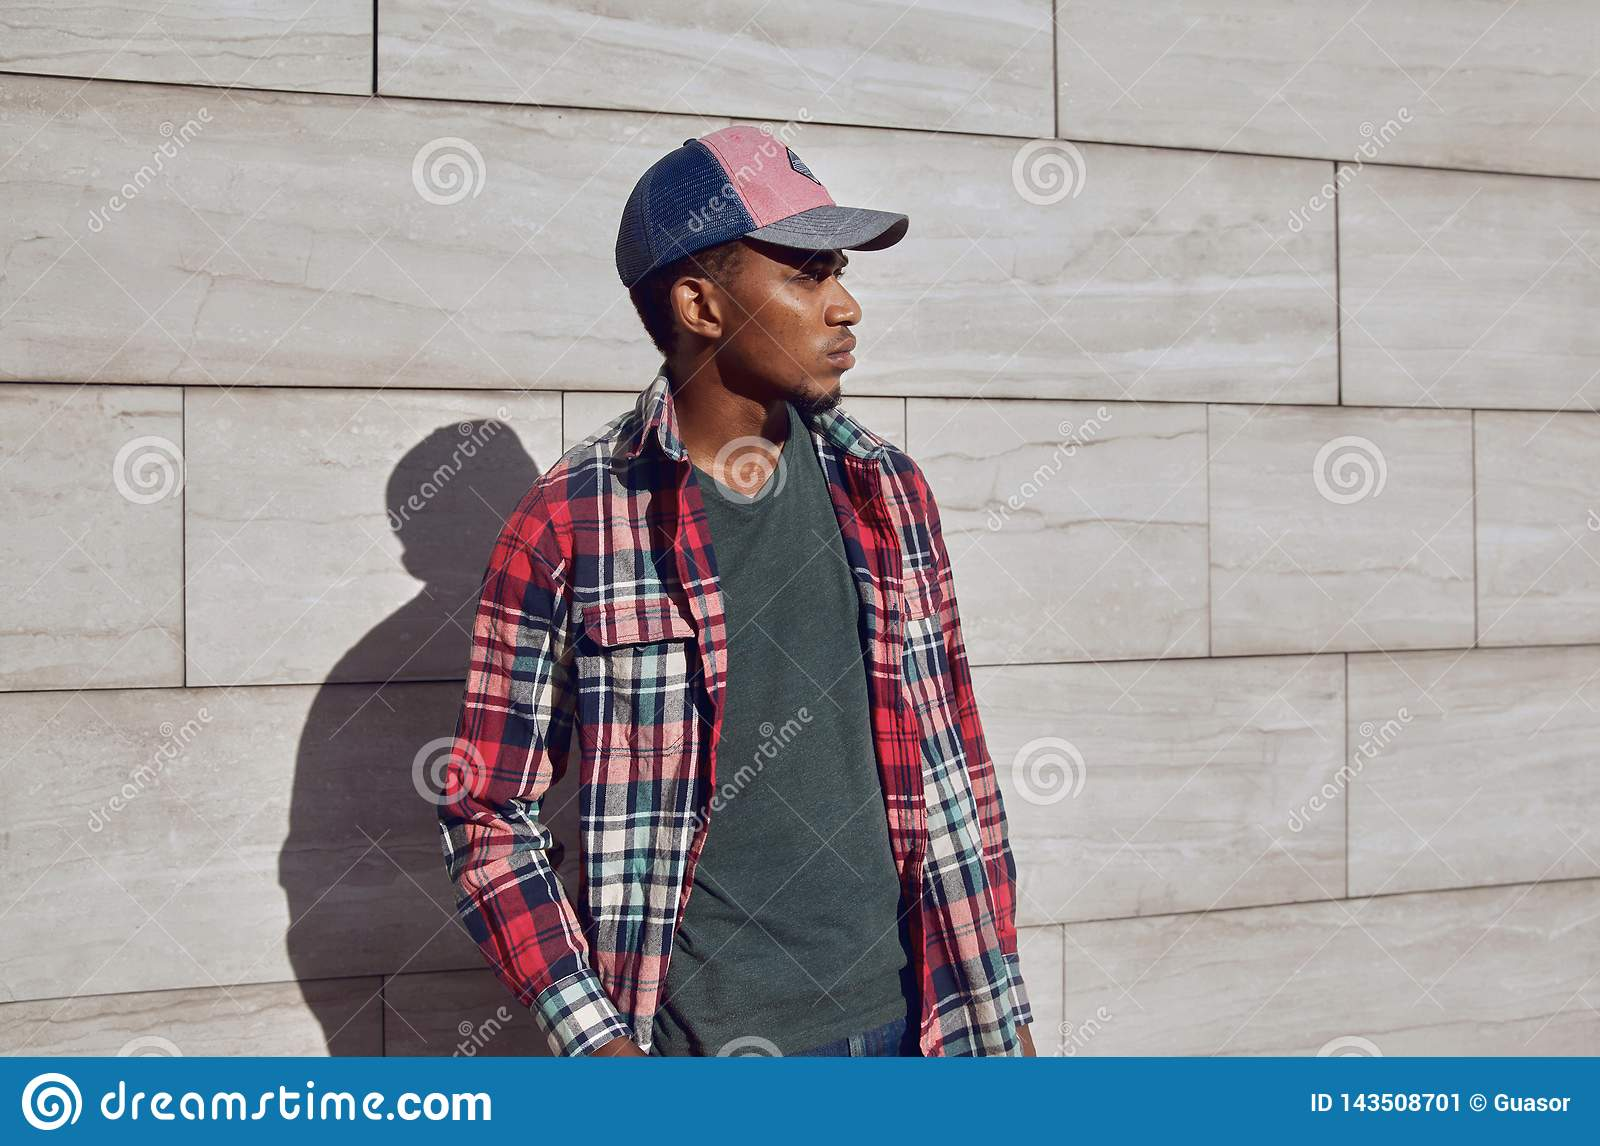 Stylish african man wearing red plaid shirt, baseball cap, looking away, young guy posing on city street, gray brick wall